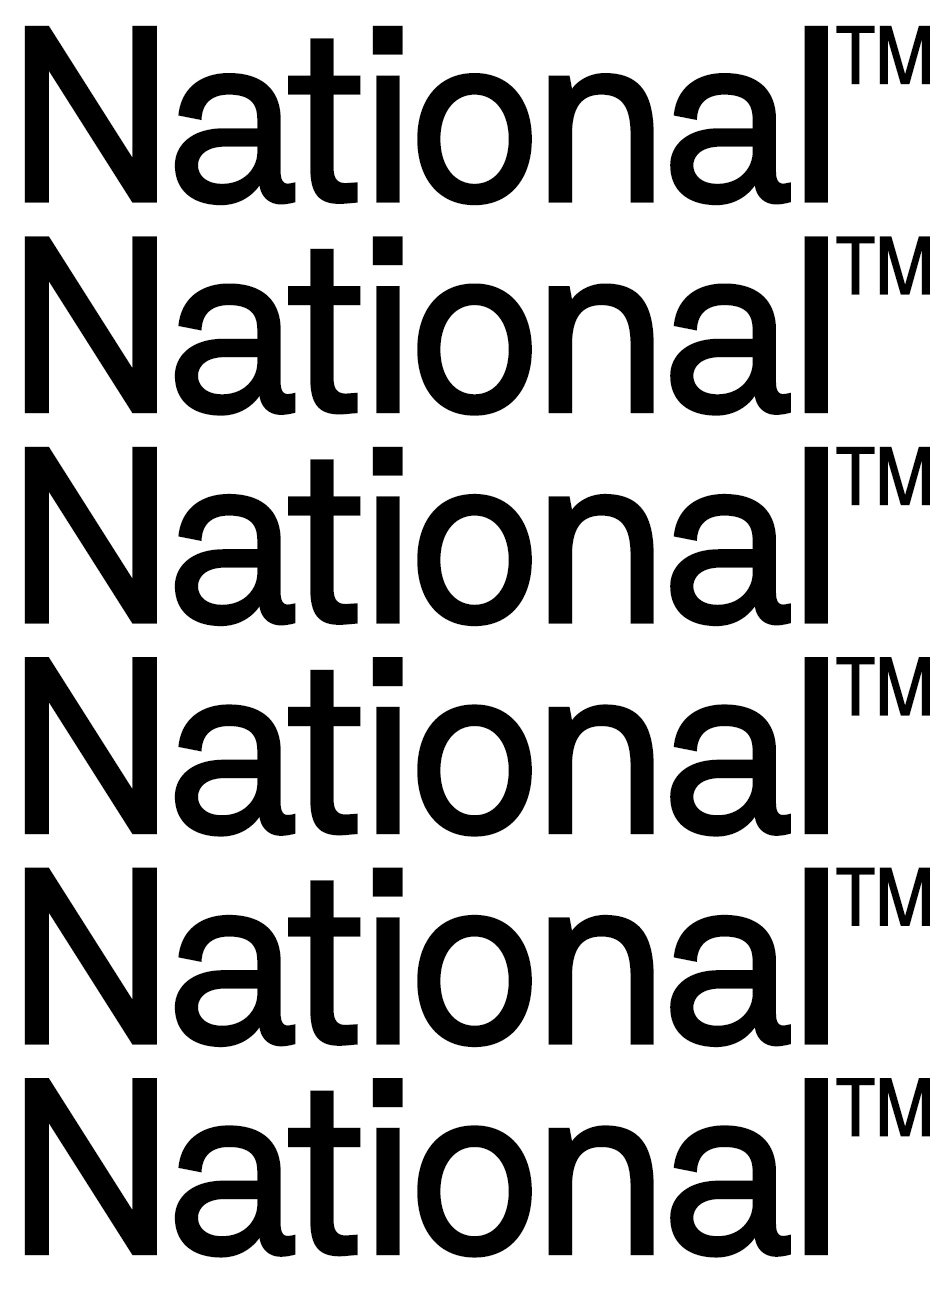 NB_NationalTM